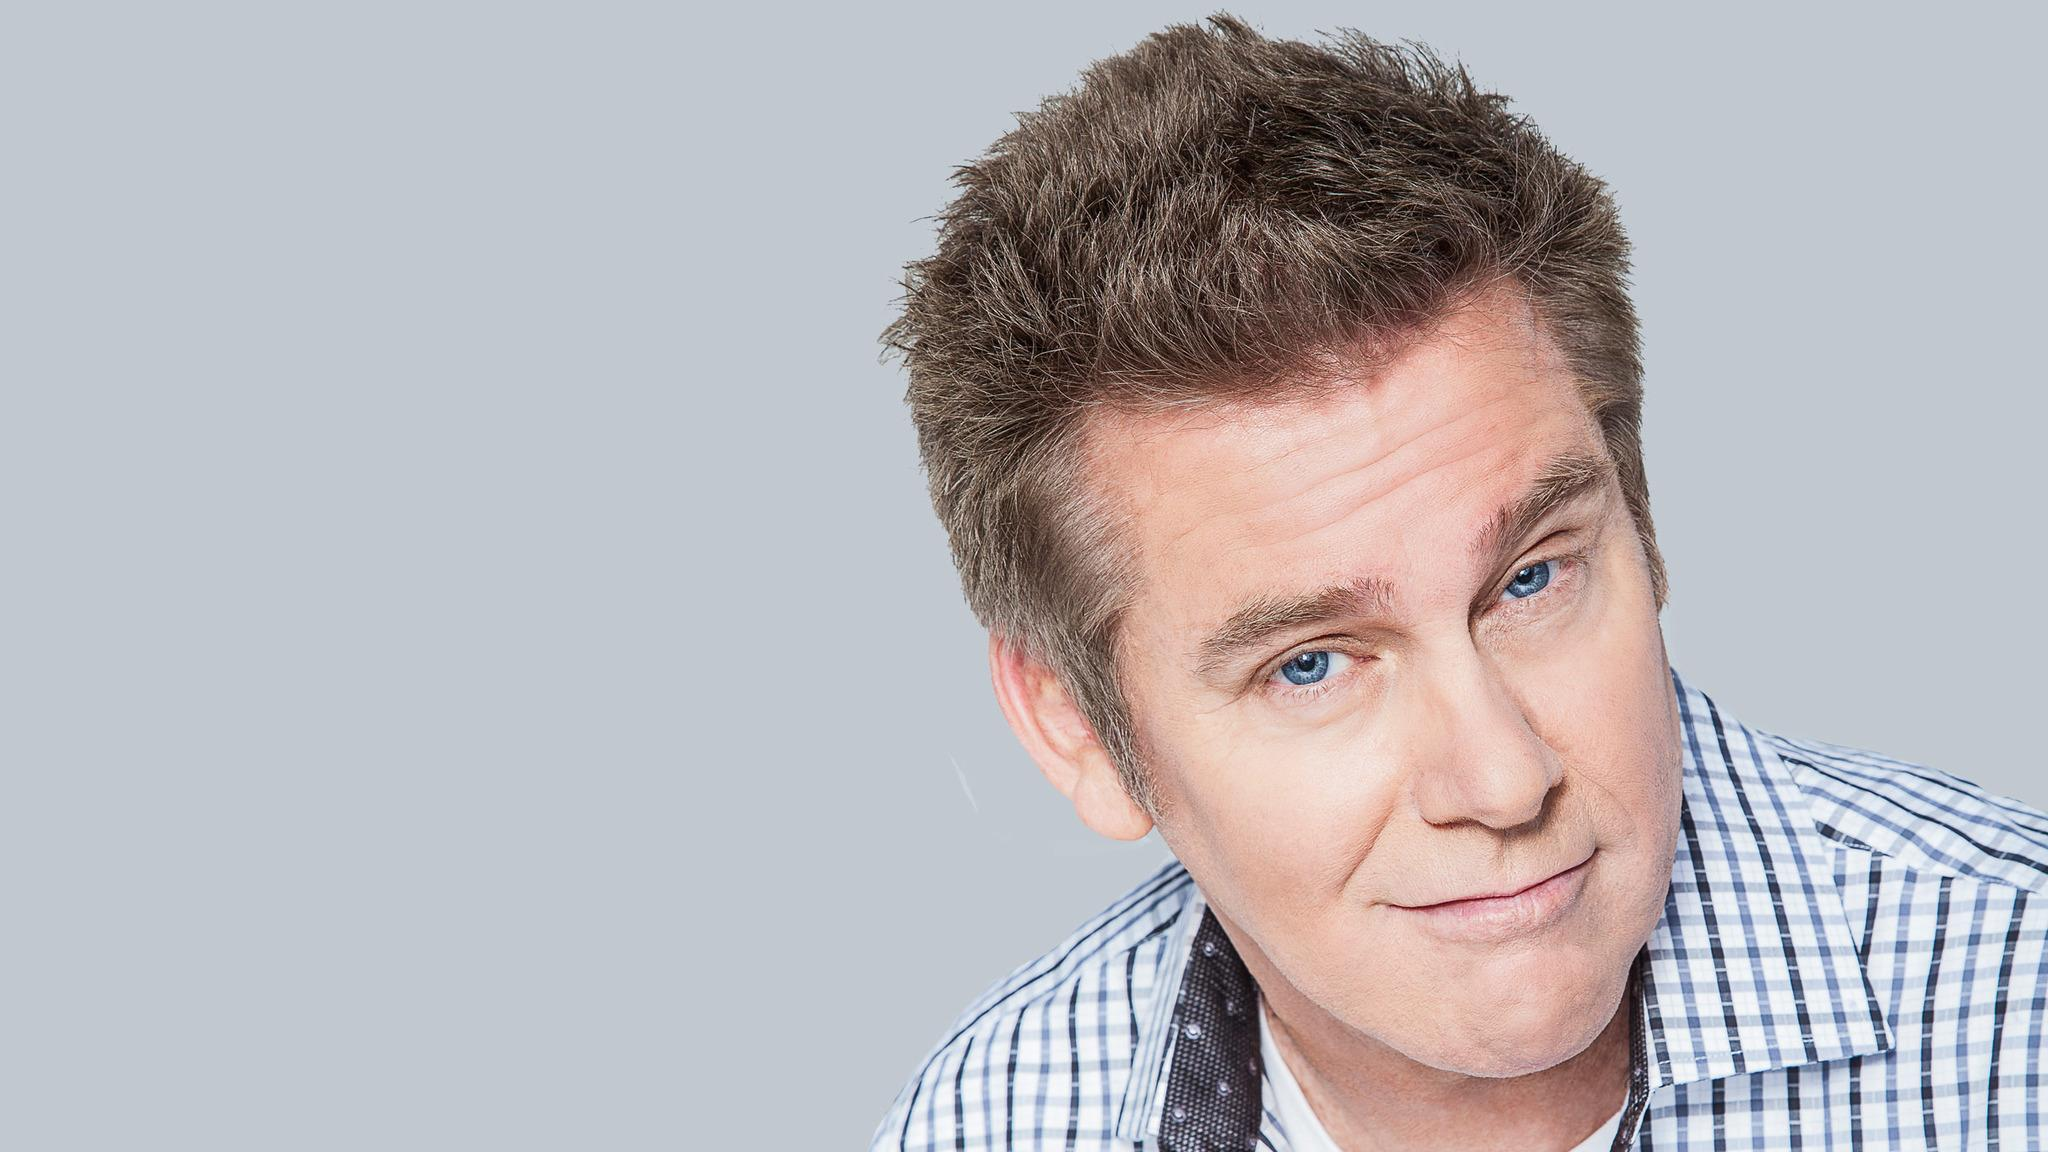 Brian Regan at Pechanga Resort and Casino